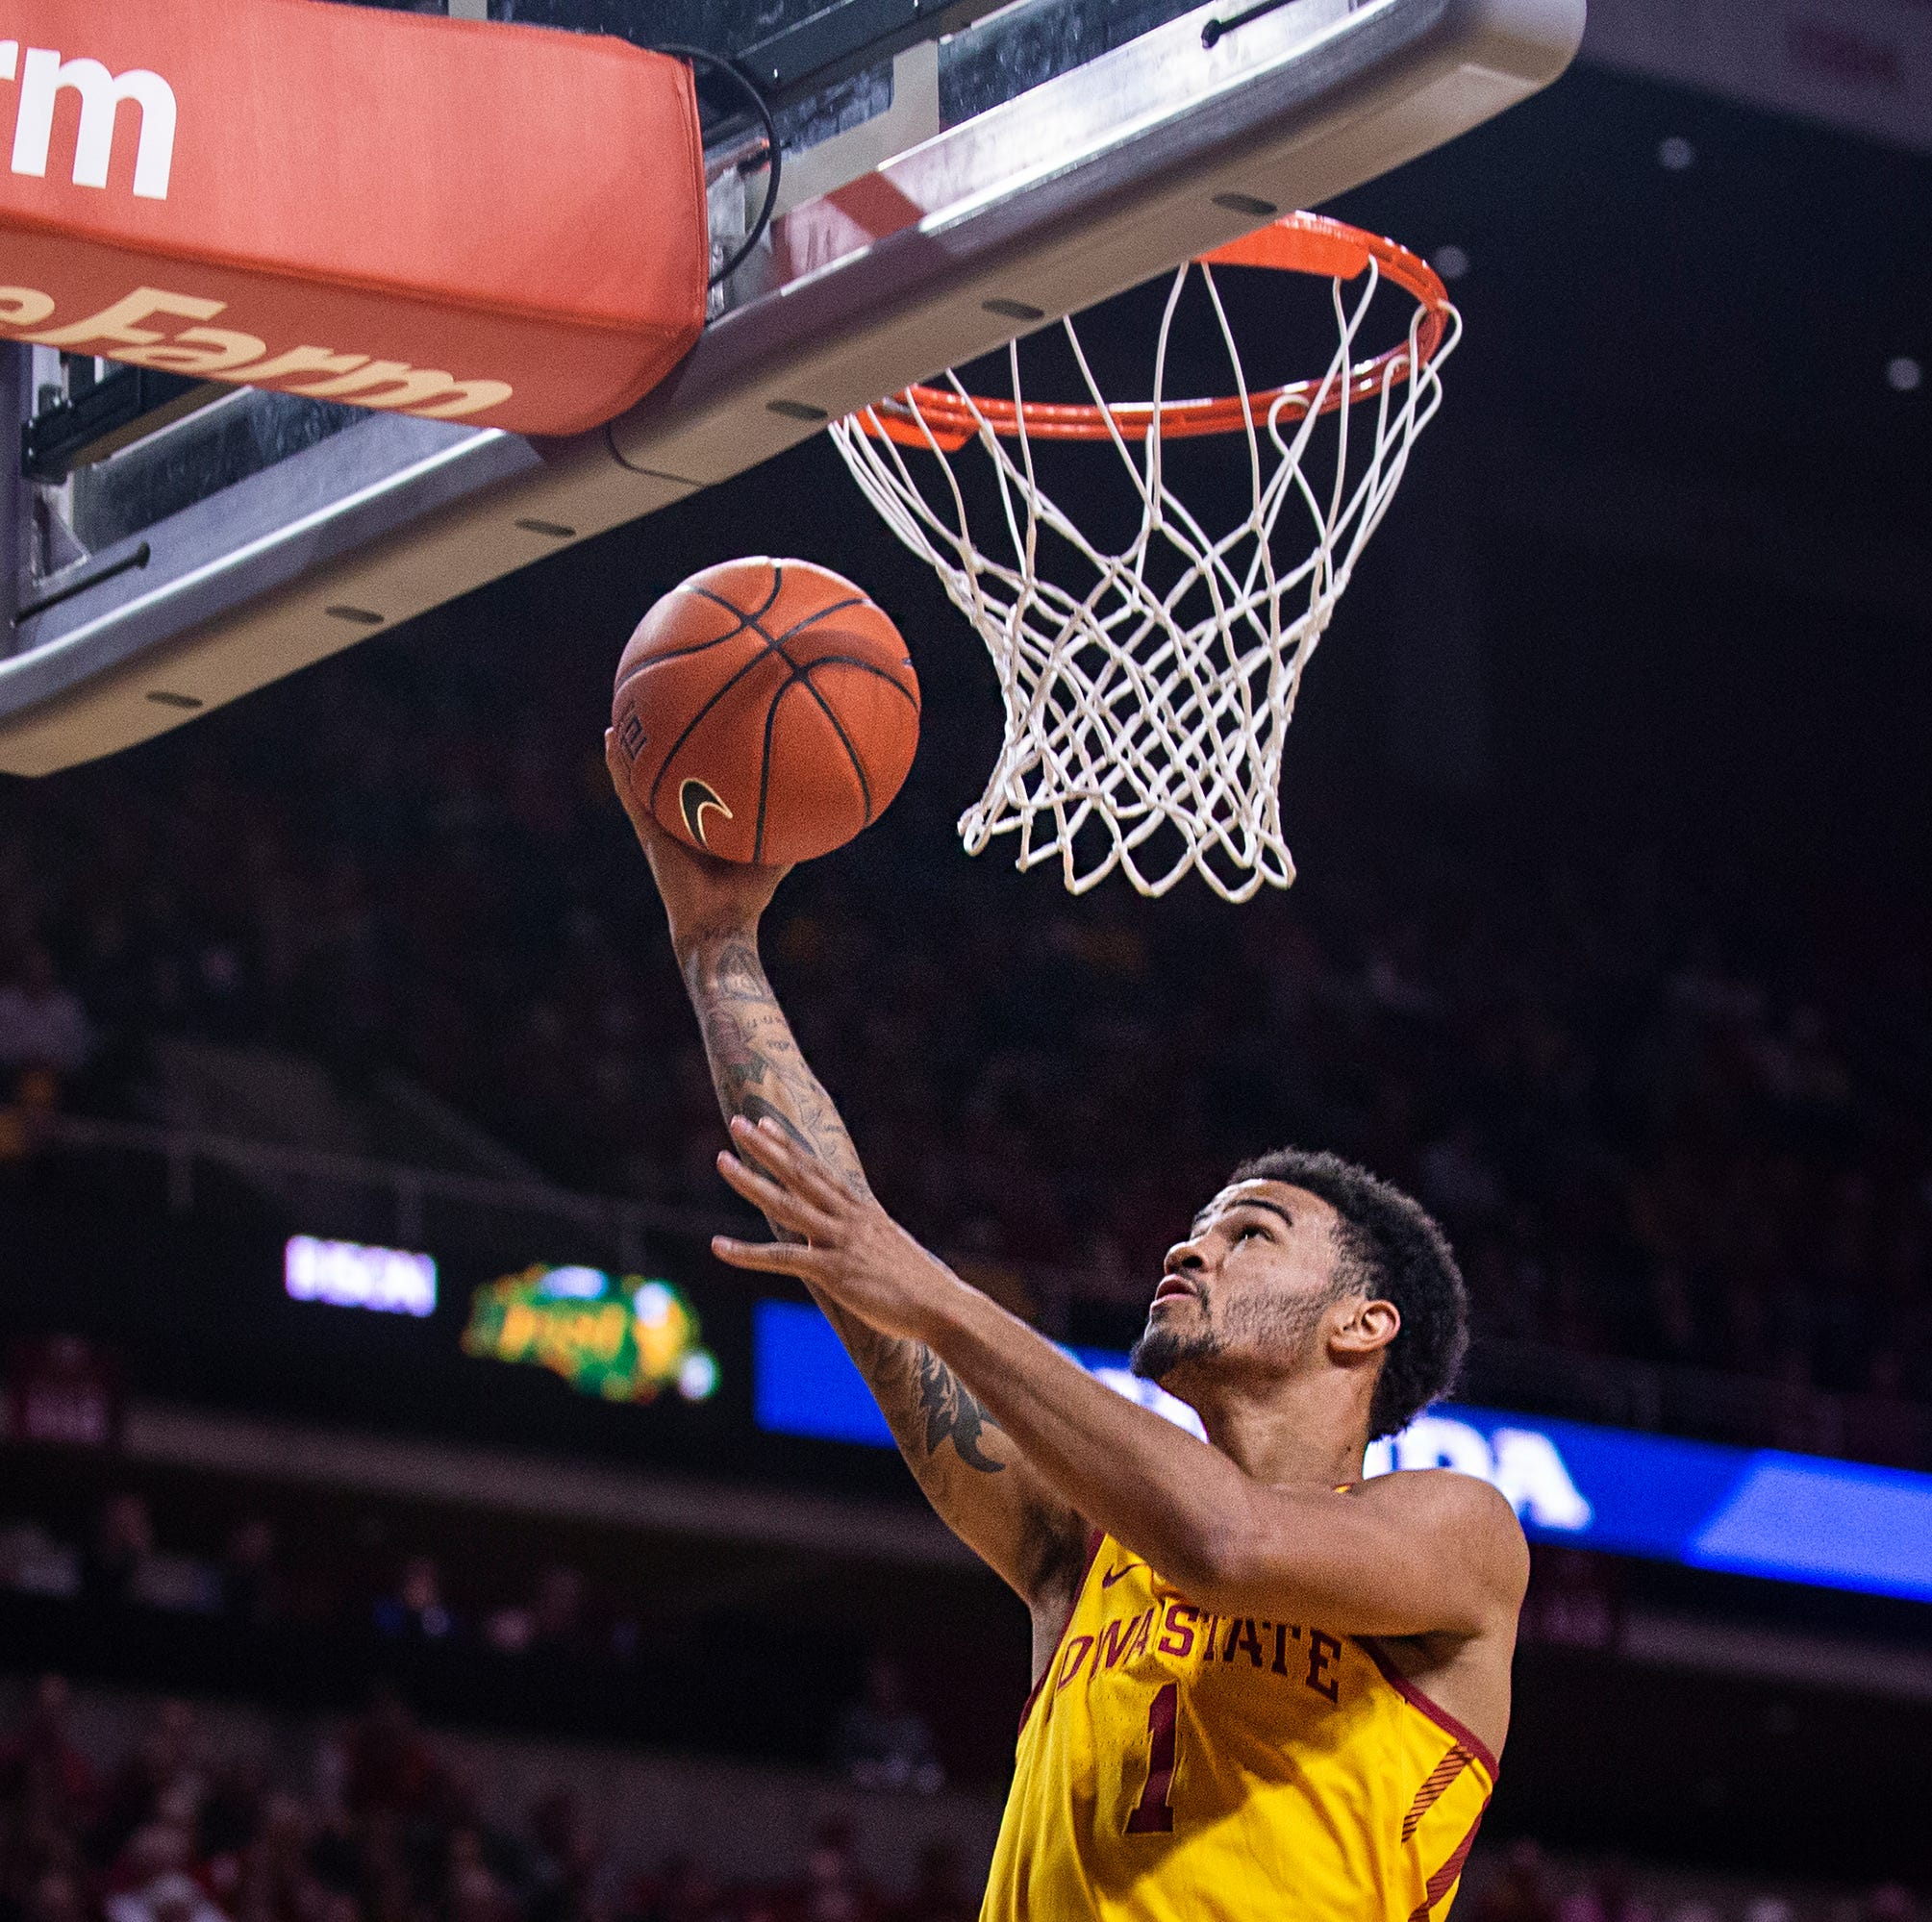 Peterson: Once everyone is healthy, Wigginton says Iowa State's ceiling is the 'sky'